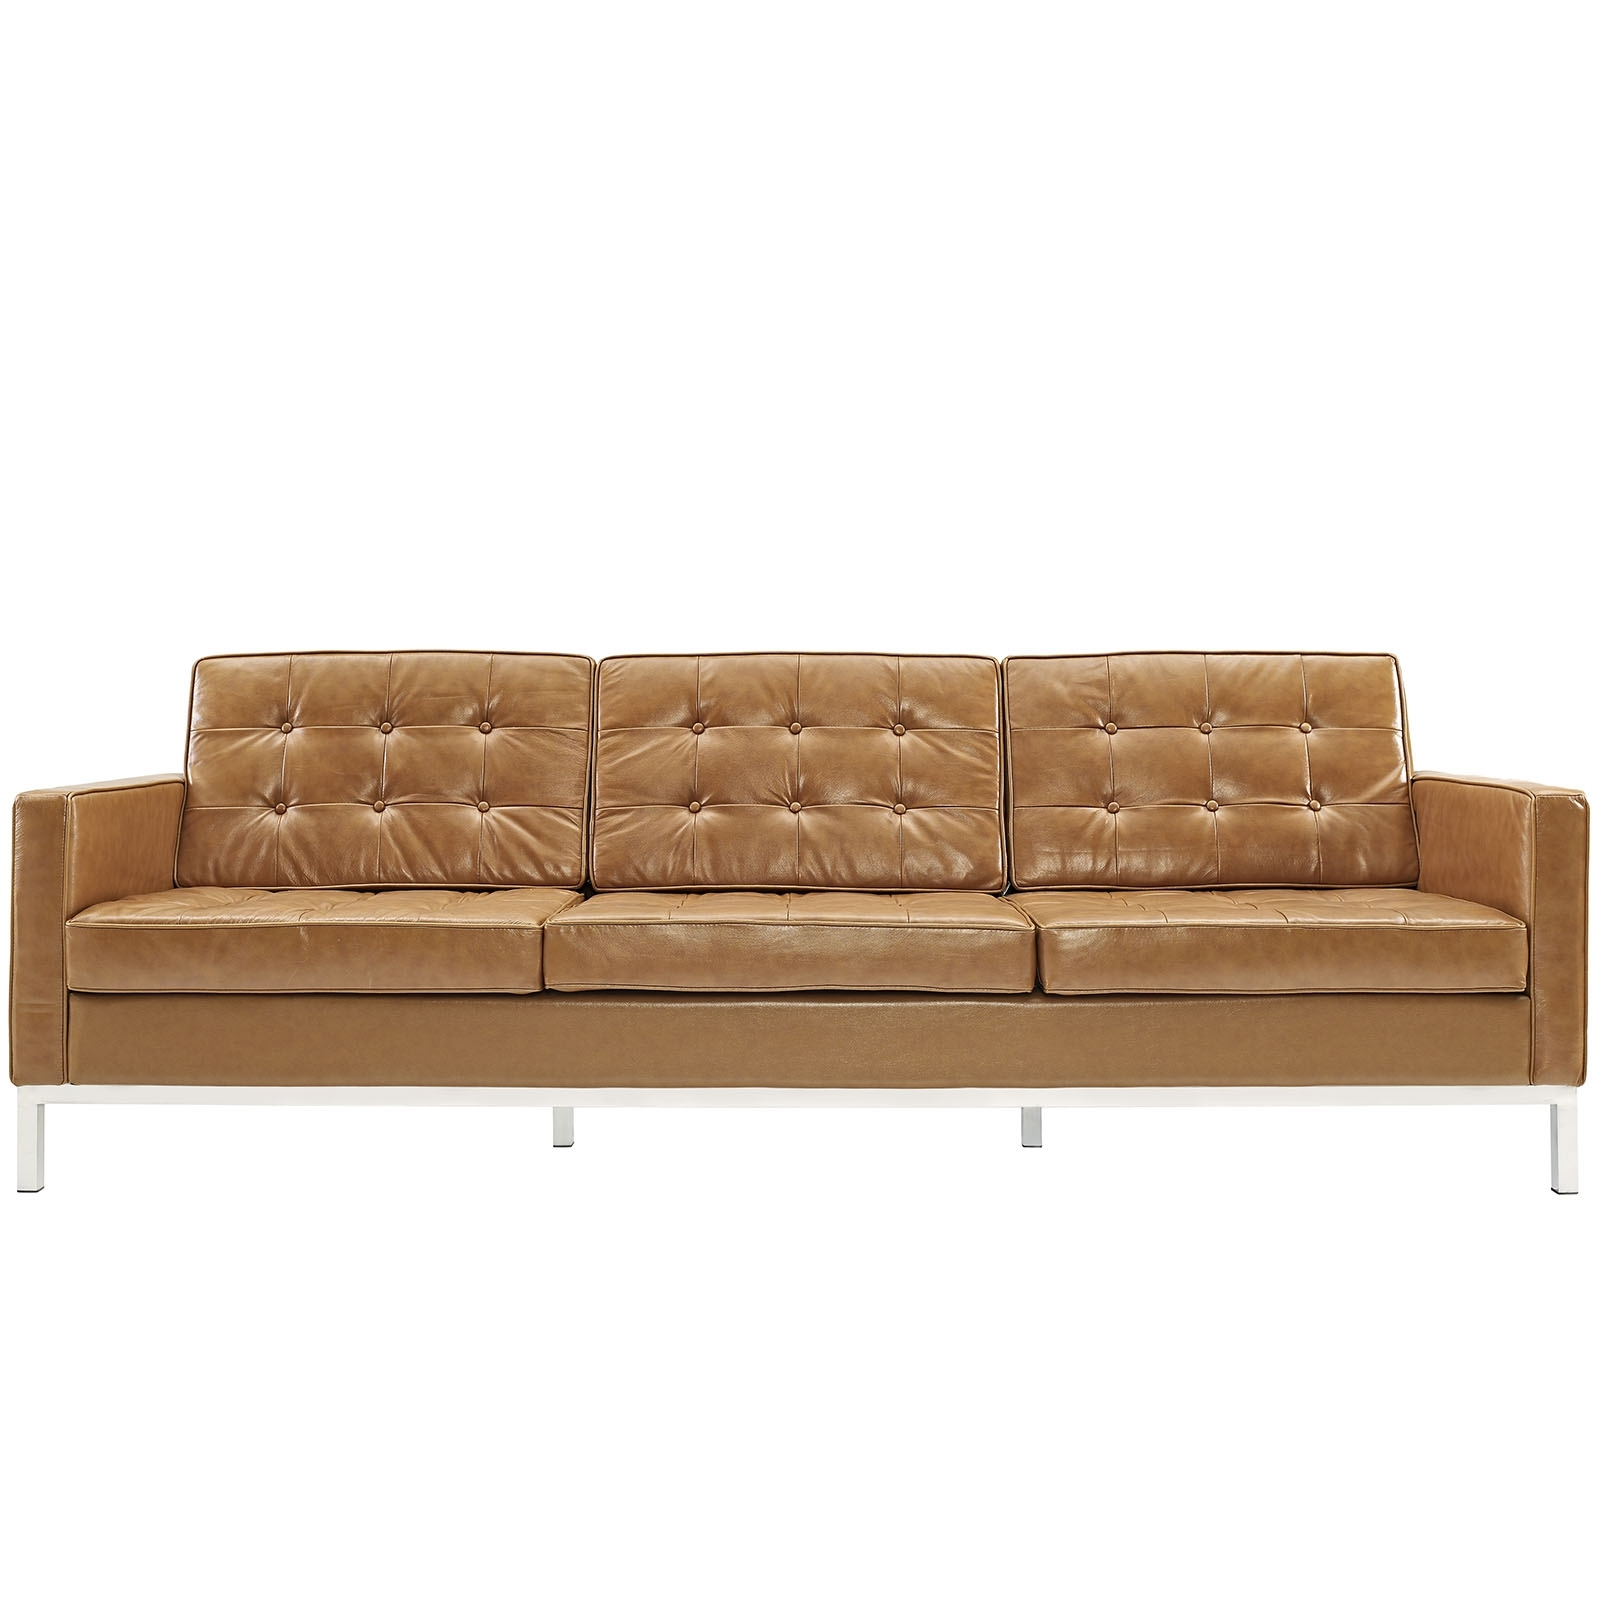 Best And Newest Florence Knoll Leather Sofas Regarding Florence Knoll Style Sofa Couch – Leather (View 2 of 20)